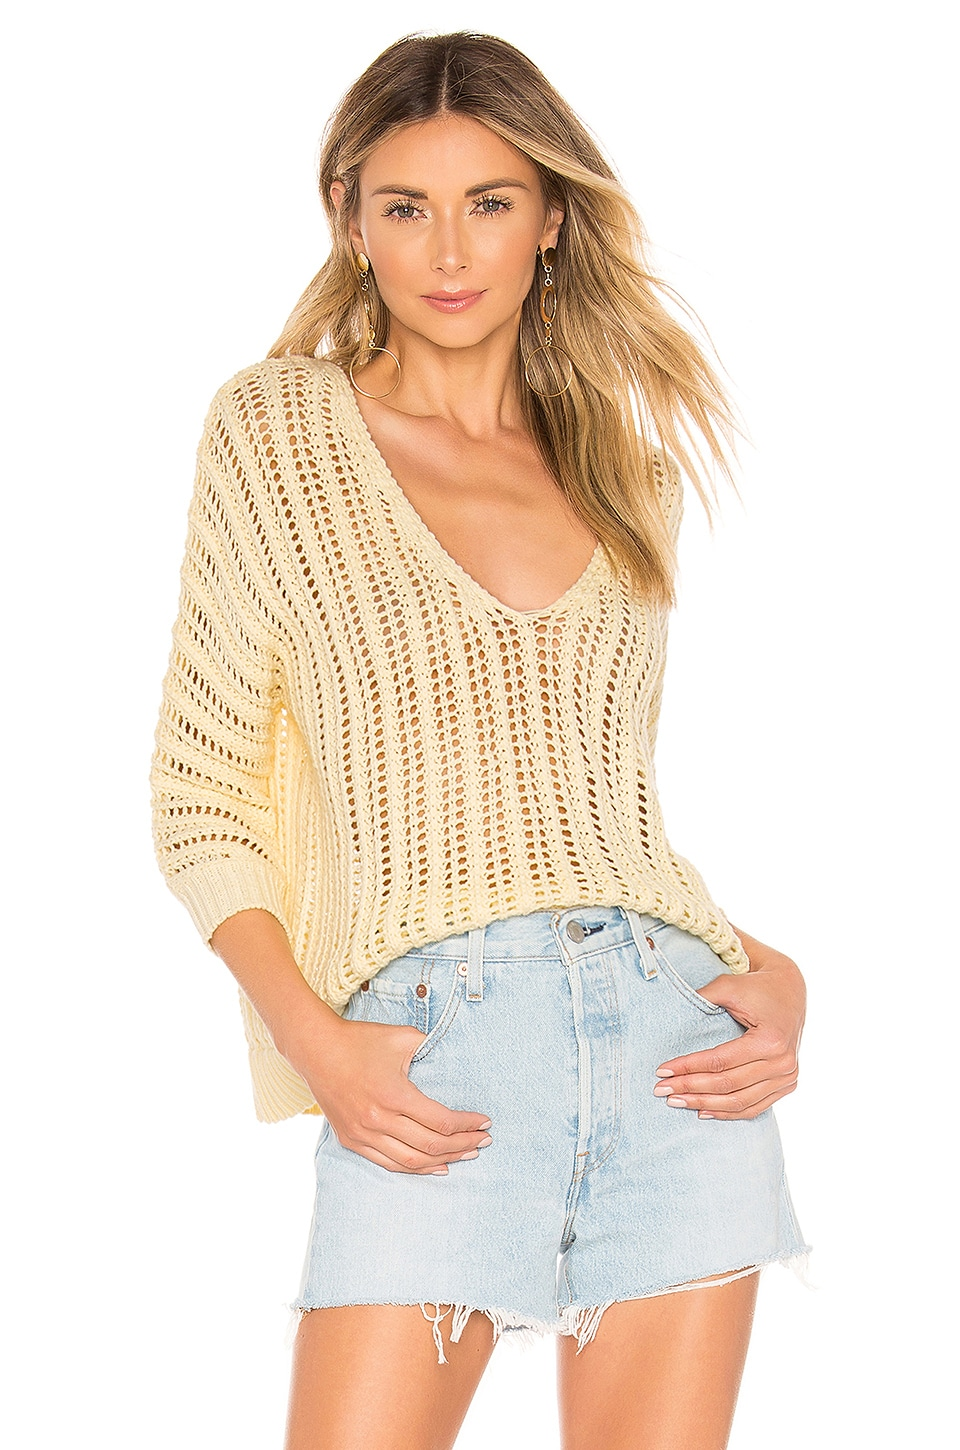 Tularosa Bergamot Sweater in Pale Yellow